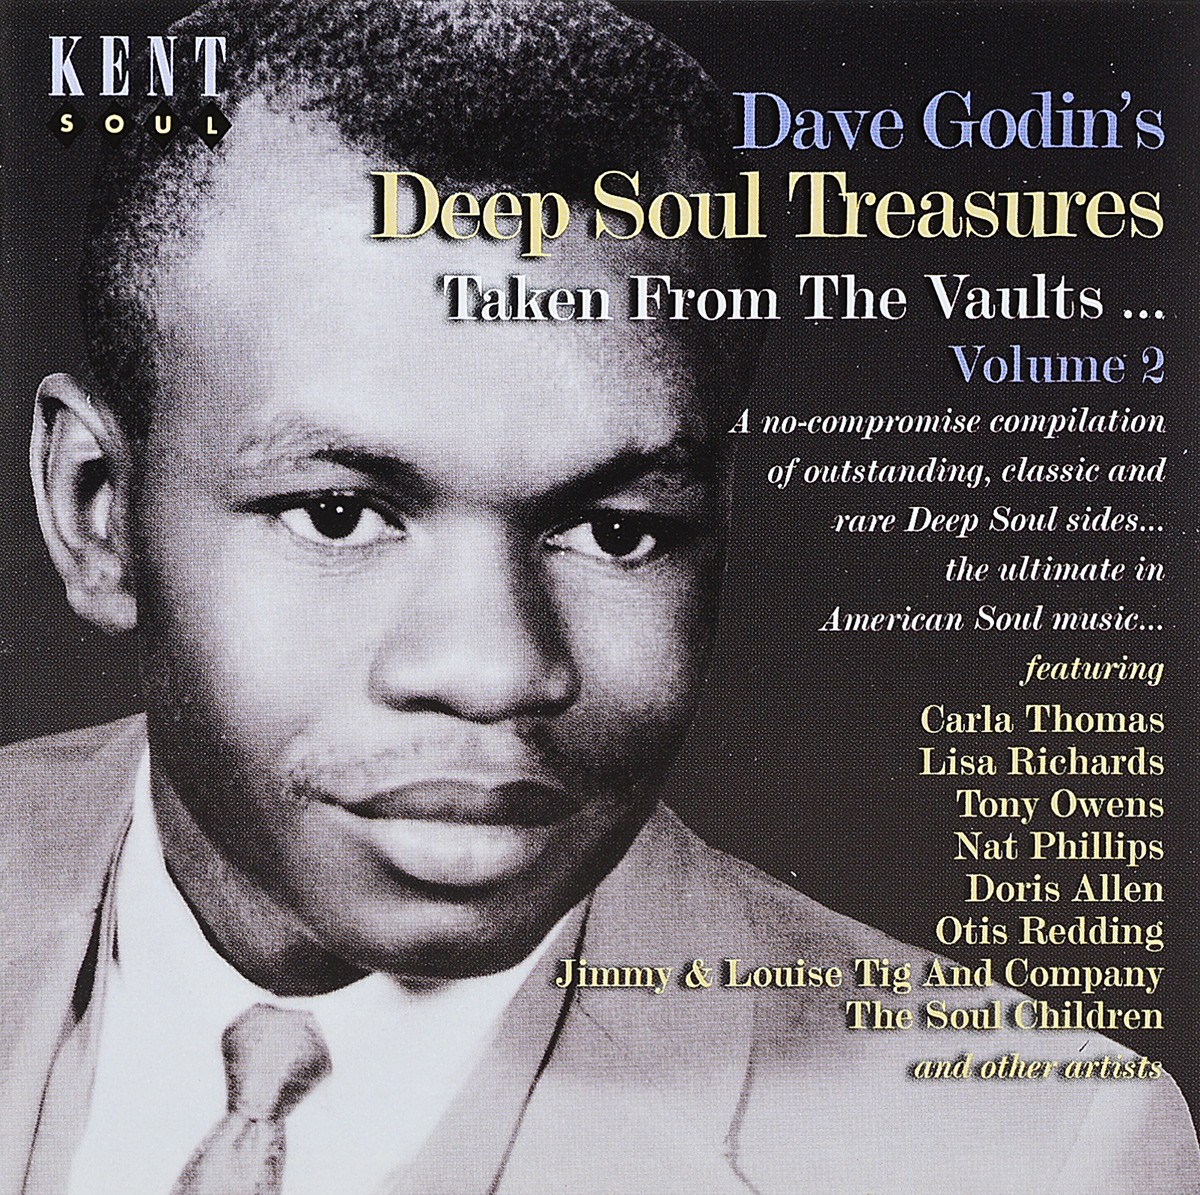 Dave Godin's Deep Soul Treasures (Taken From The Vaults...) Volume 2 hotone soul press volume expression wah wah guitar pedal cry baby sound